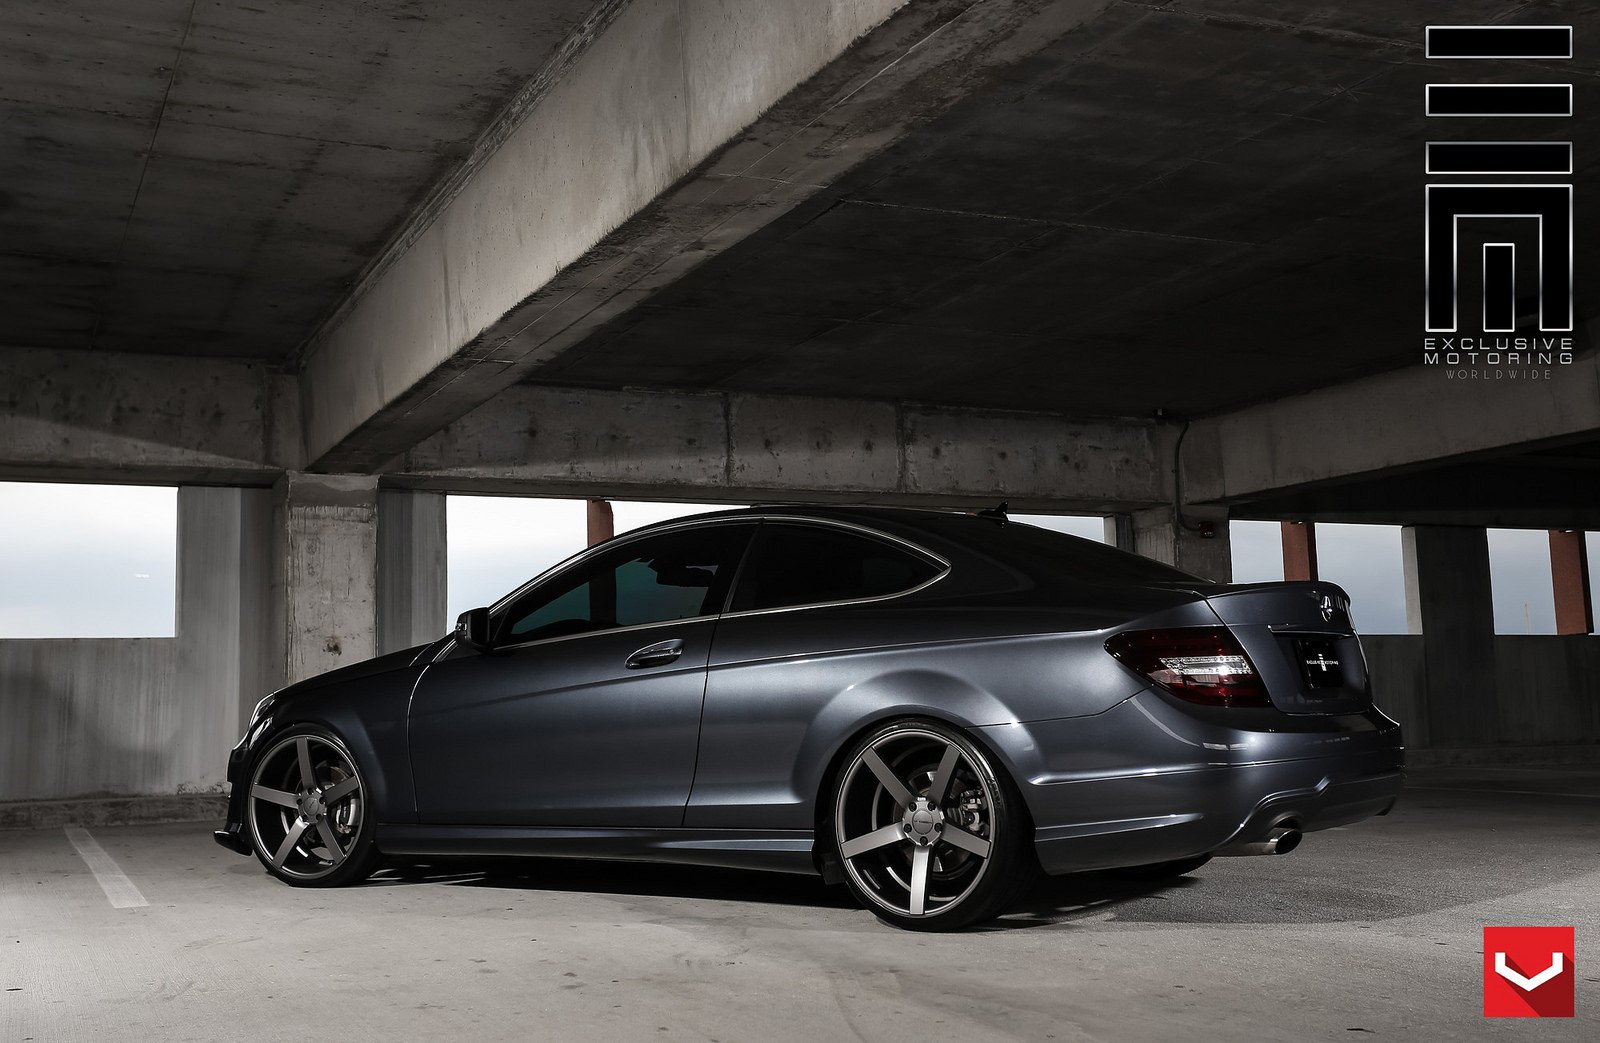 Pimped Out Cars Wallpapers Cars Vossen Tuning Wheels Mercedes C250 Coupe Black